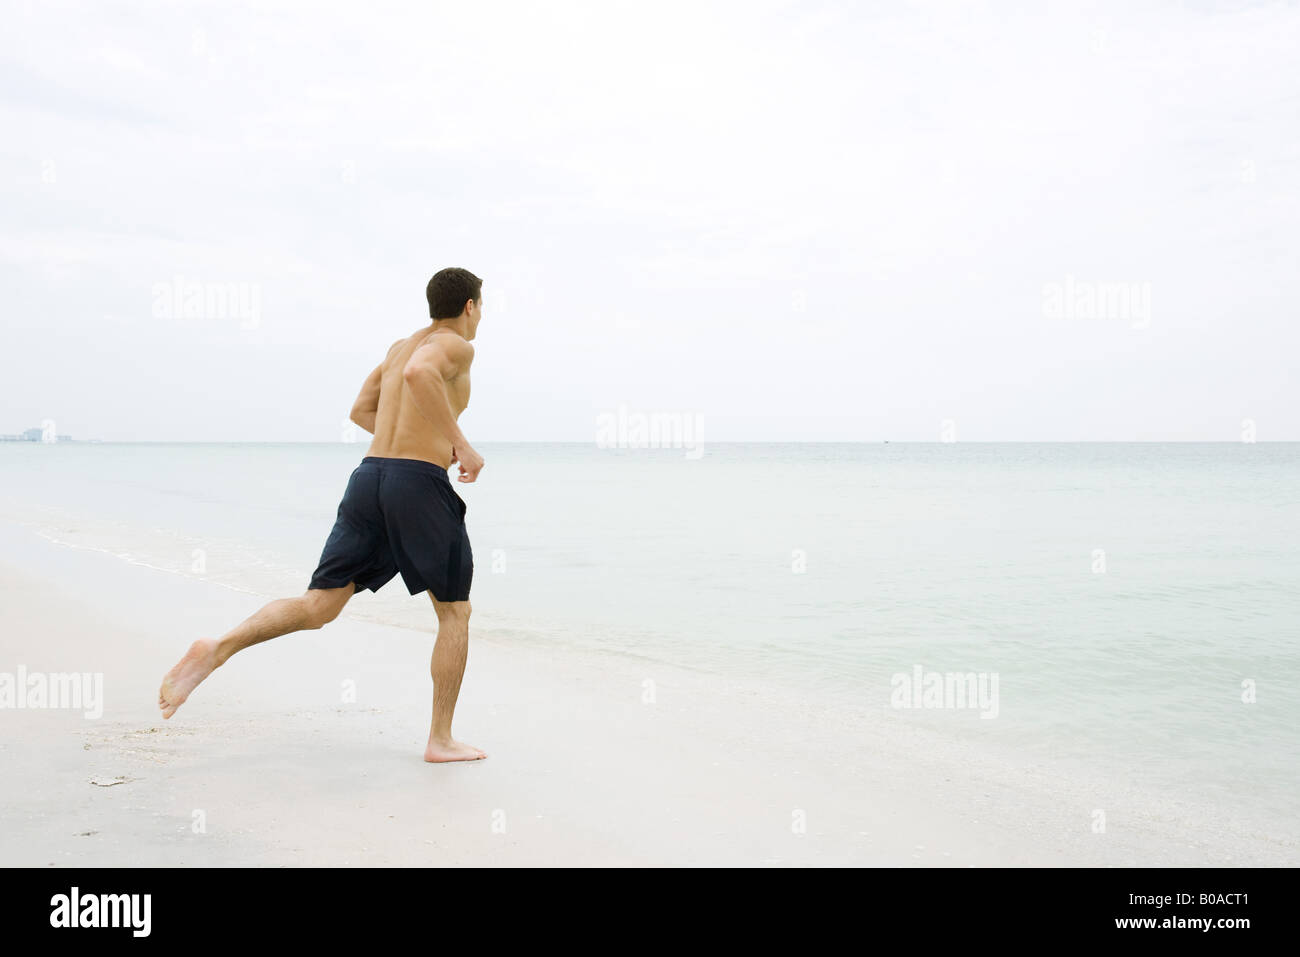 Man running at the beach, side view - Stock Image